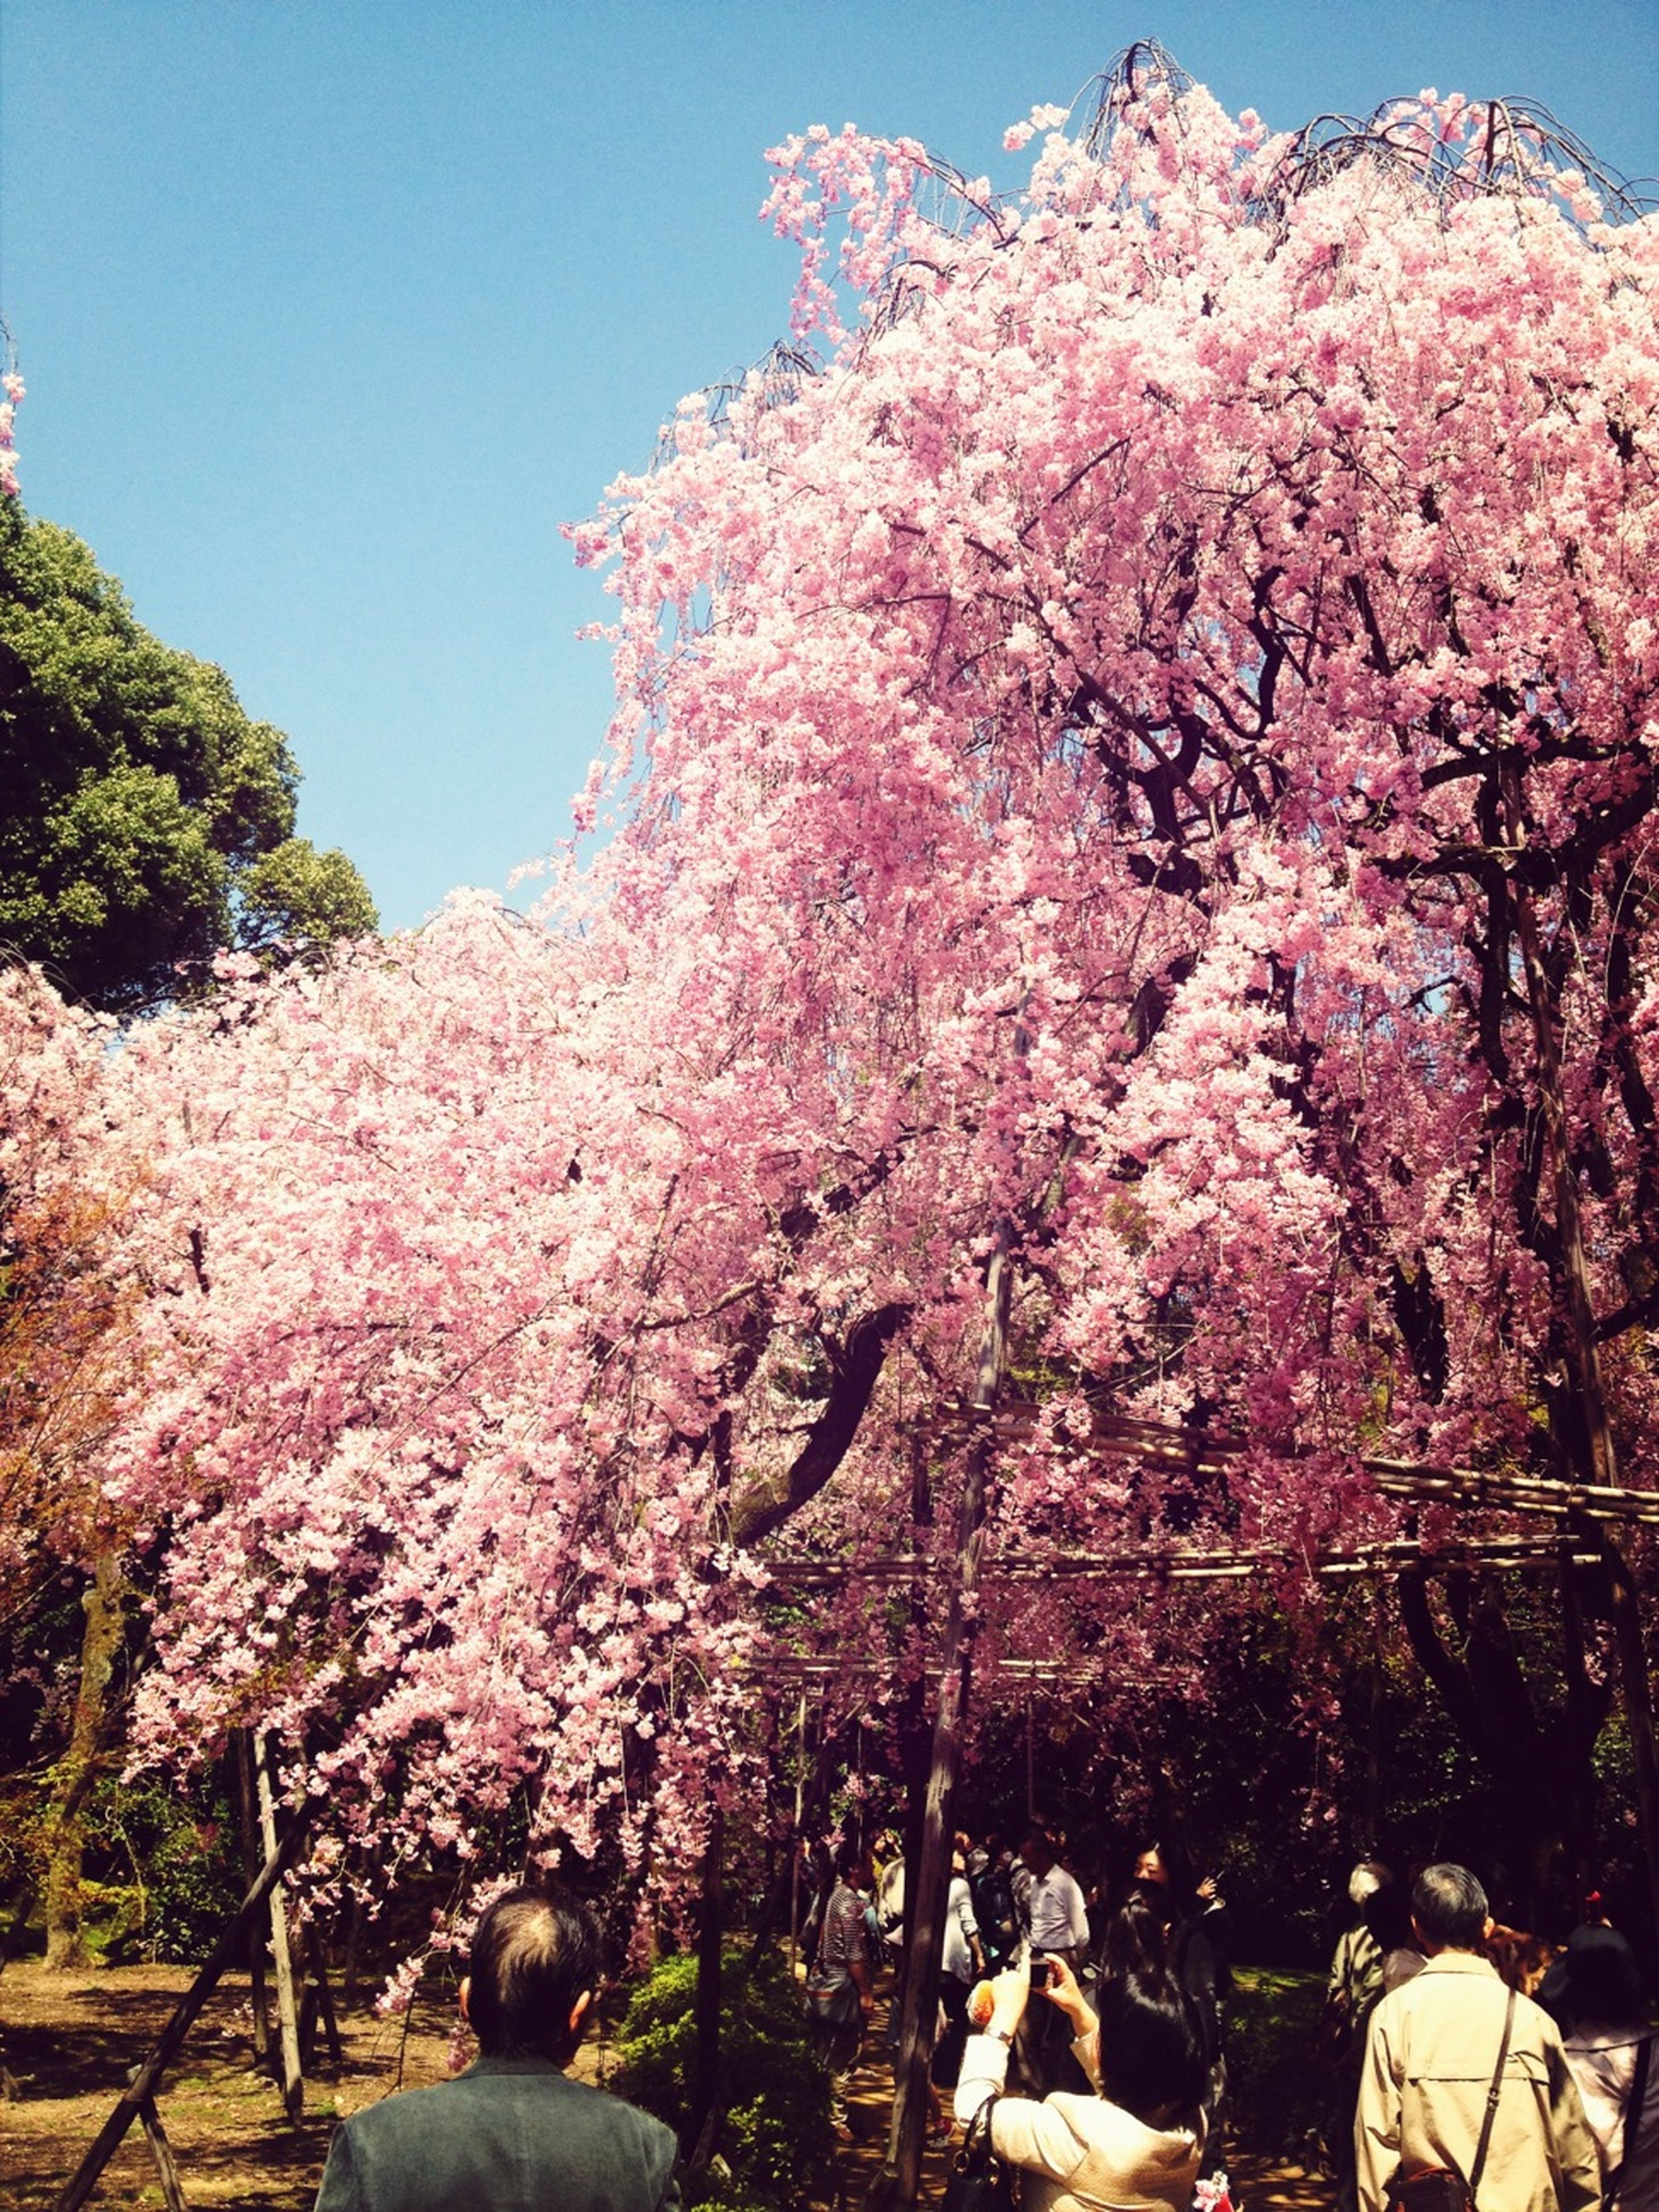 flower, tree, cherry tree, cherry blossom, growth, clear sky, branch, beauty in nature, freshness, nature, pink color, fragility, blossom, low angle view, blooming, sky, springtime, in bloom, sunlight, day